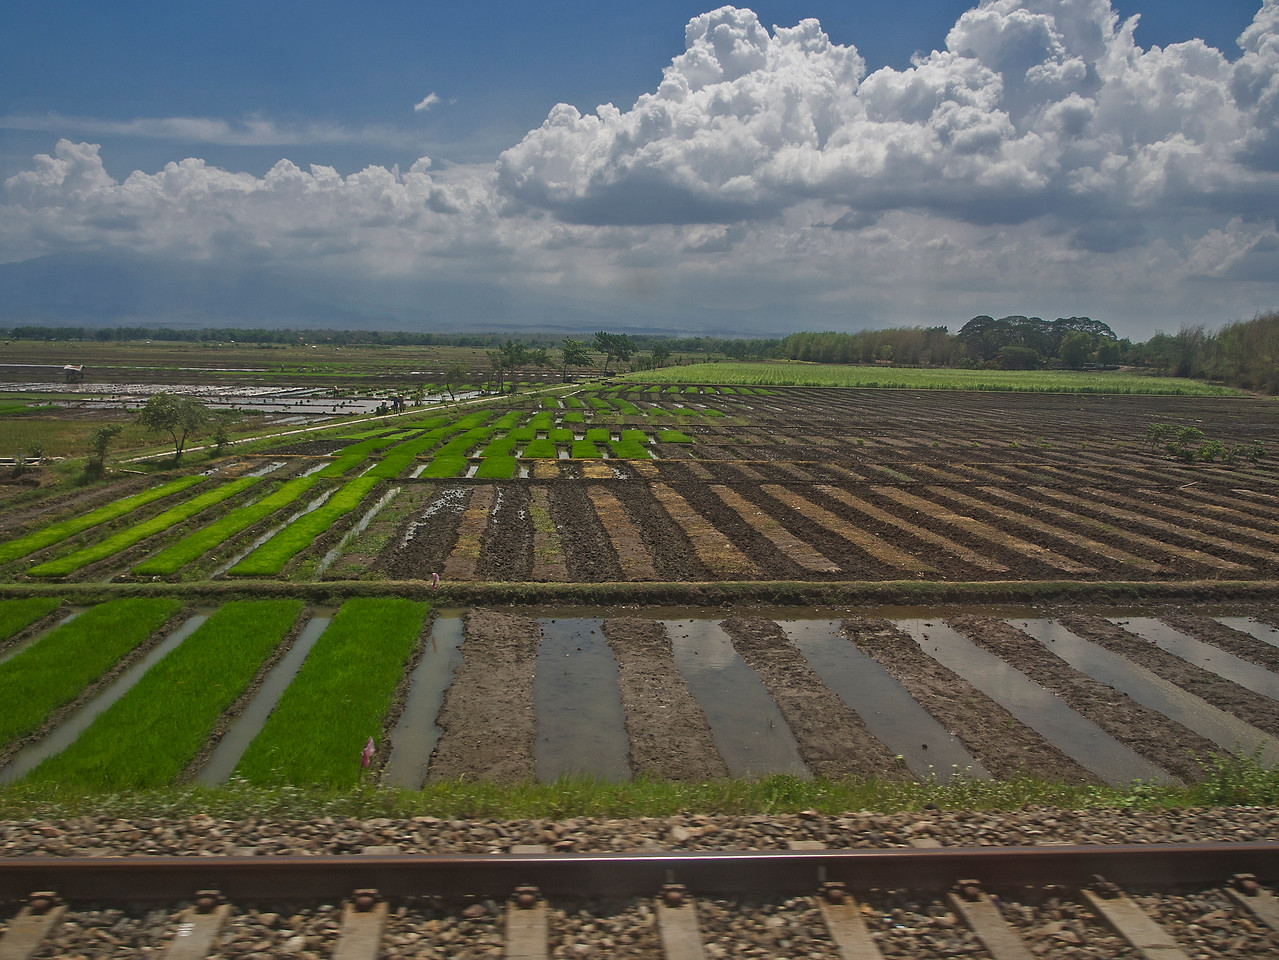 Train from Yogyakarta to Malang, Java, Indonesia